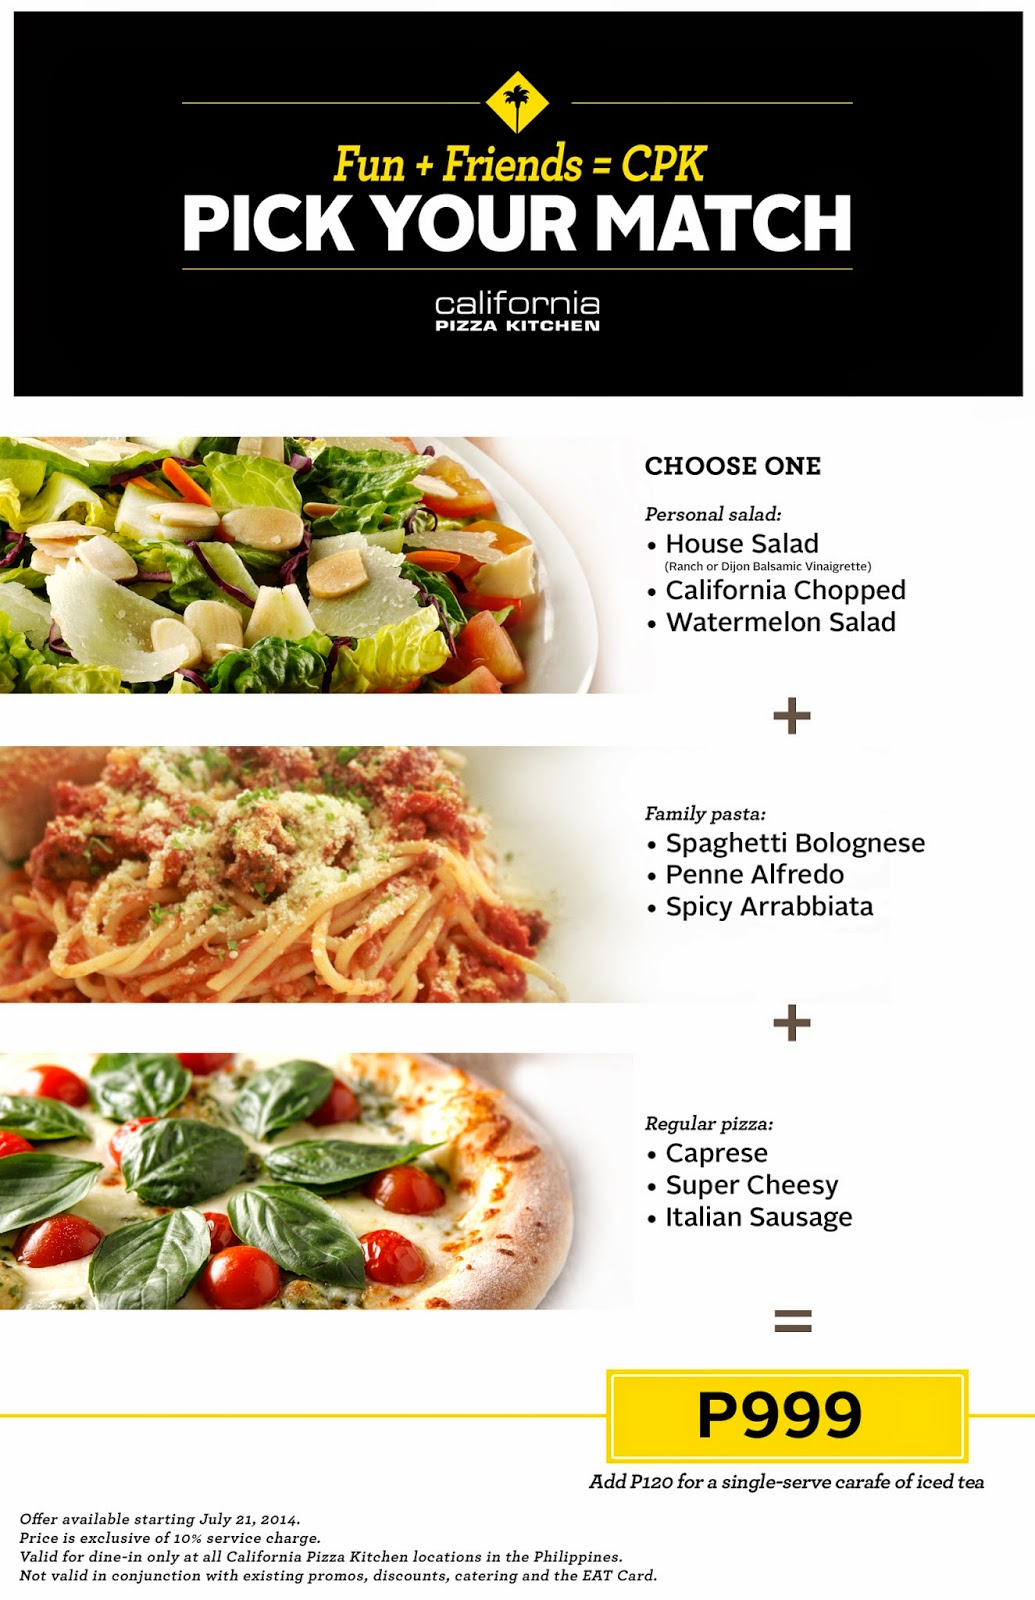 California Pizza Kitchen - Pick Your Match Promo